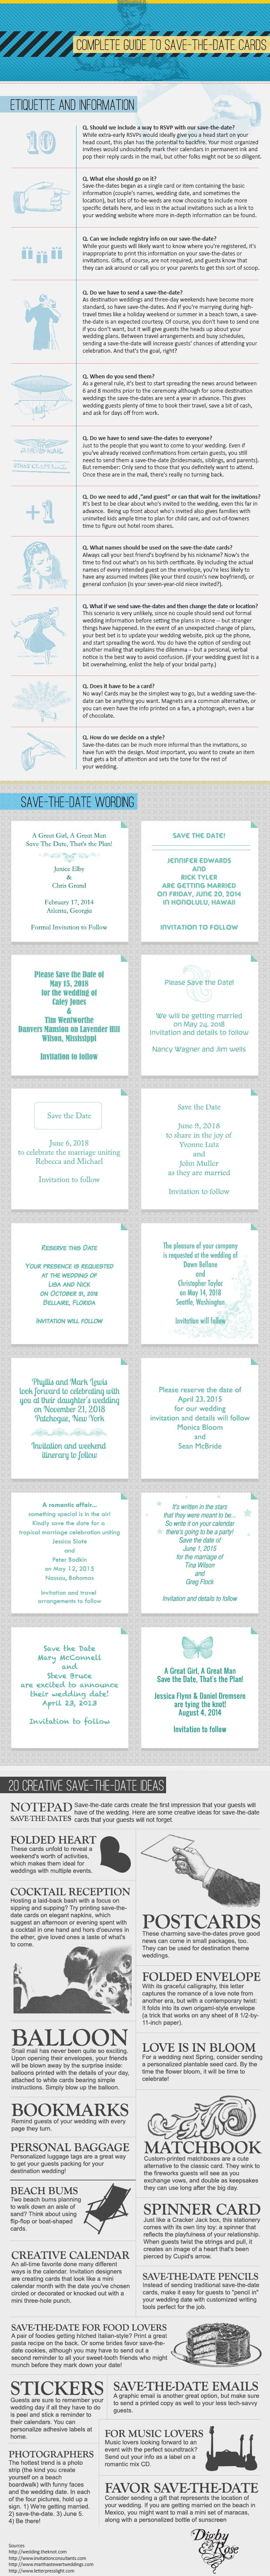 Guide to Save the Date Cards 15 Destination Wedding Save the Date Wording Examples